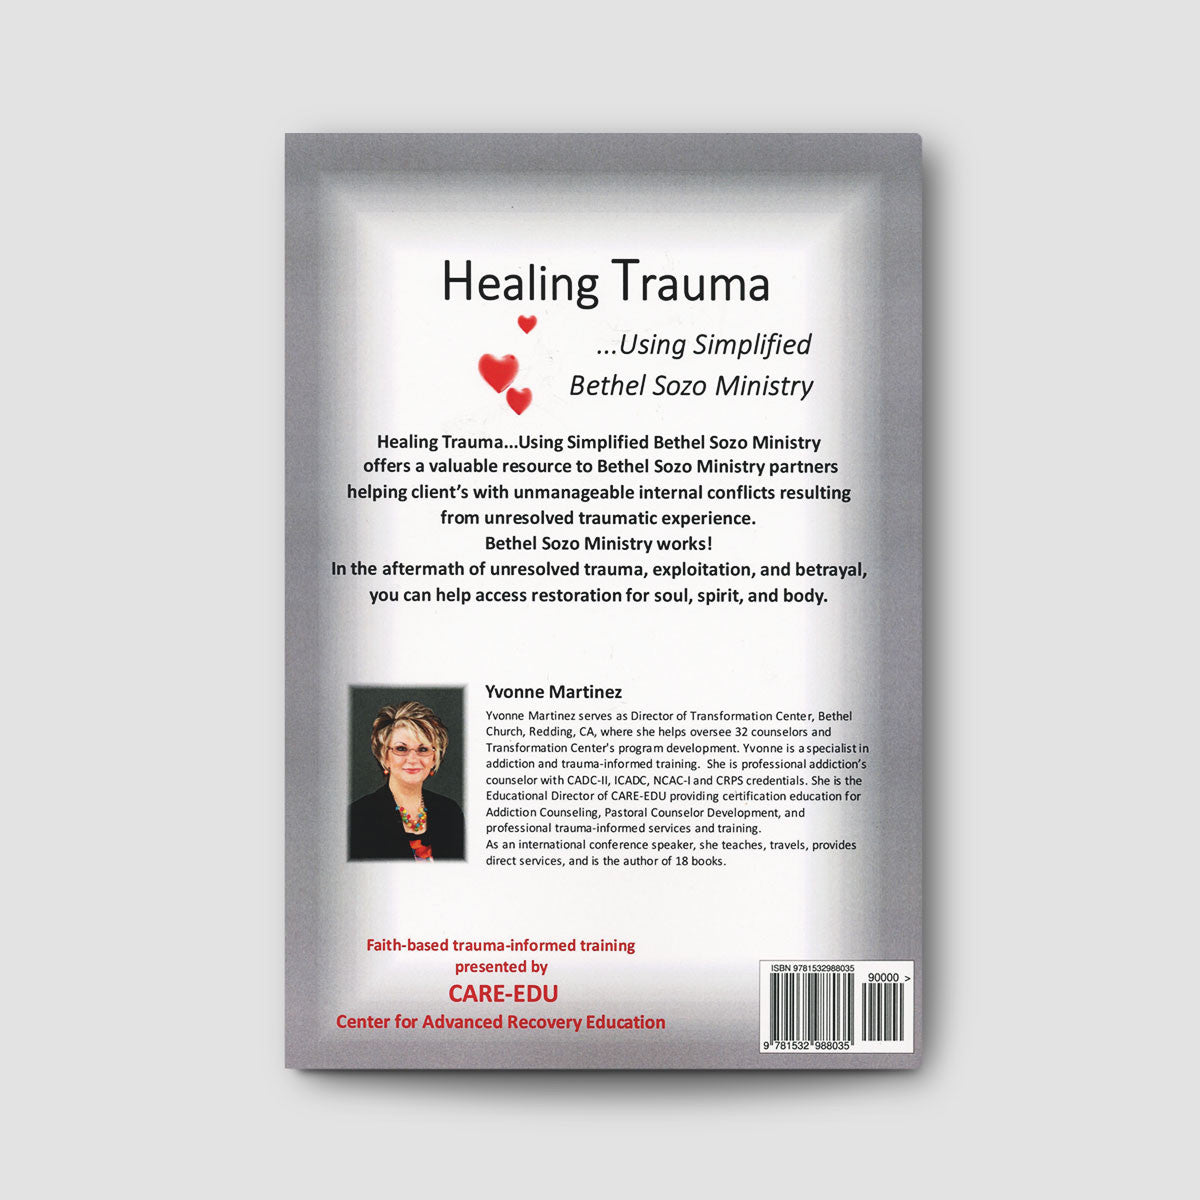 Healing Trauma...Using Simplified Bethel Sozo Ministry